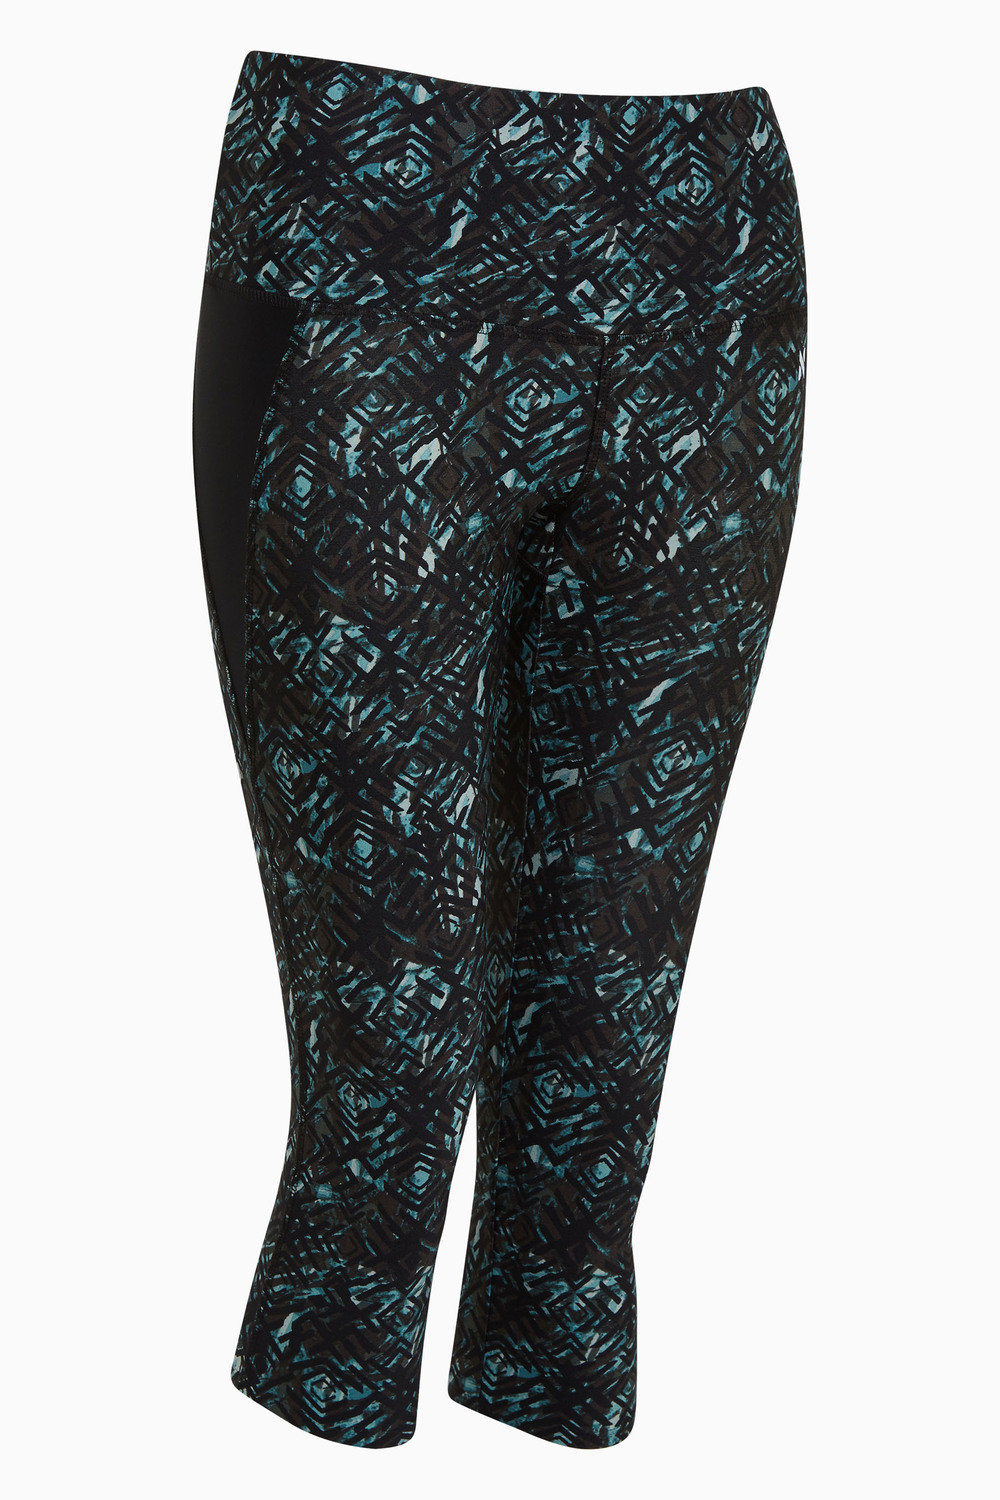 Next Geo Capri Leggings Online Shop Ezibuy Pants Black